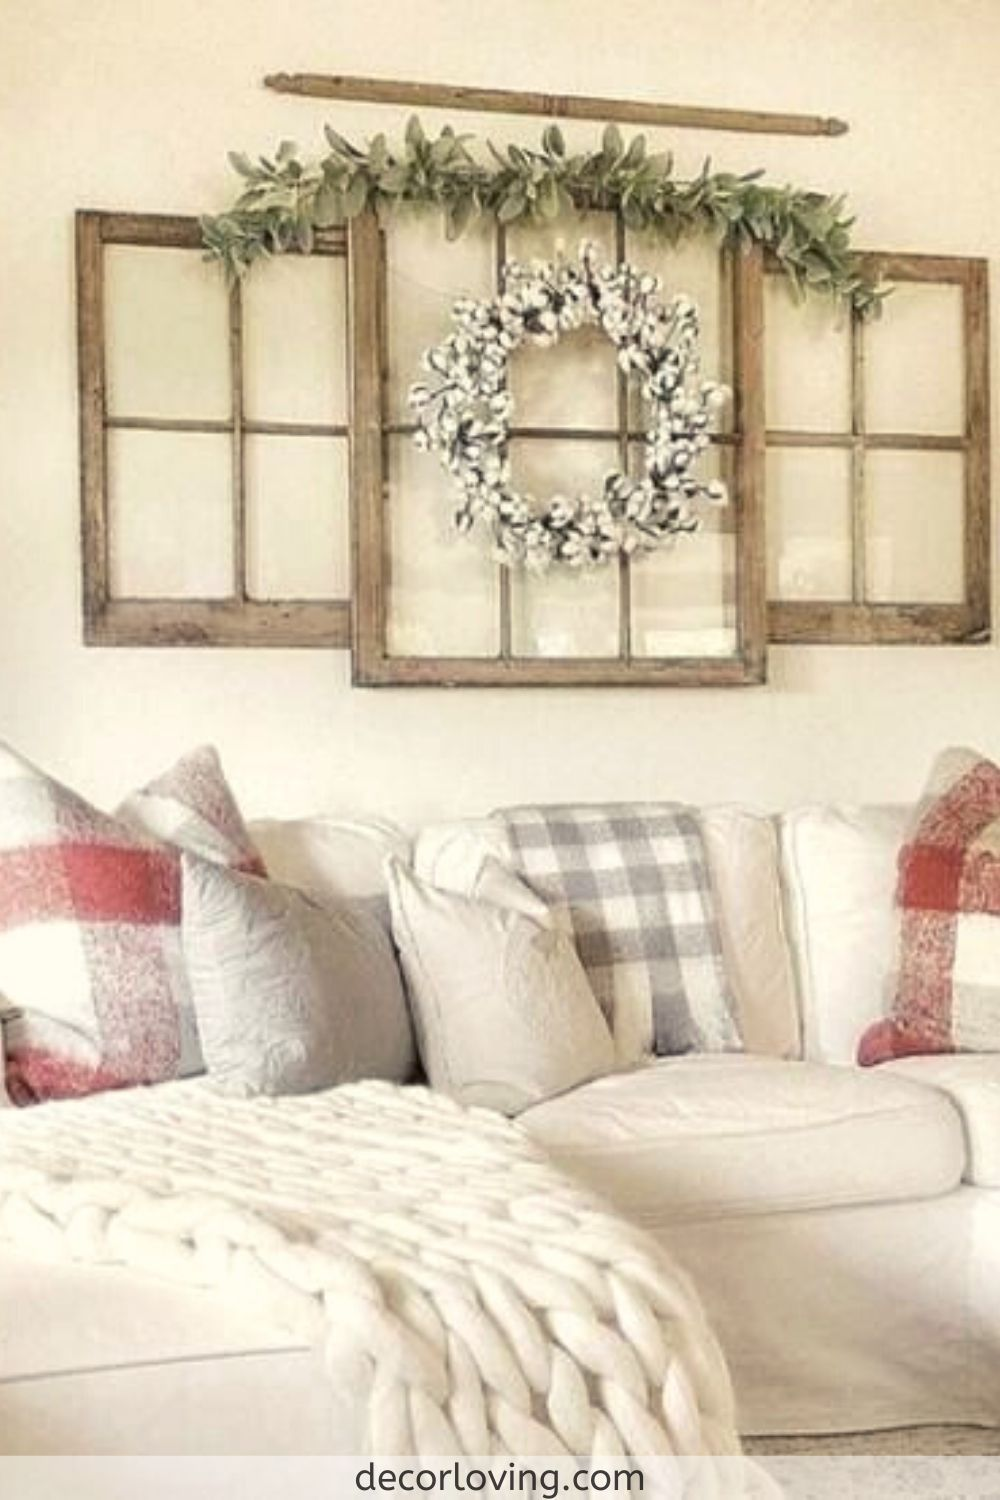 Awesome Farmhouse Living Room Wall Decor Ideas That You Will Love For Home Interior D In 2020 Farm House Living Room Farmhouse Decor Living Room Wall Decor Living Room